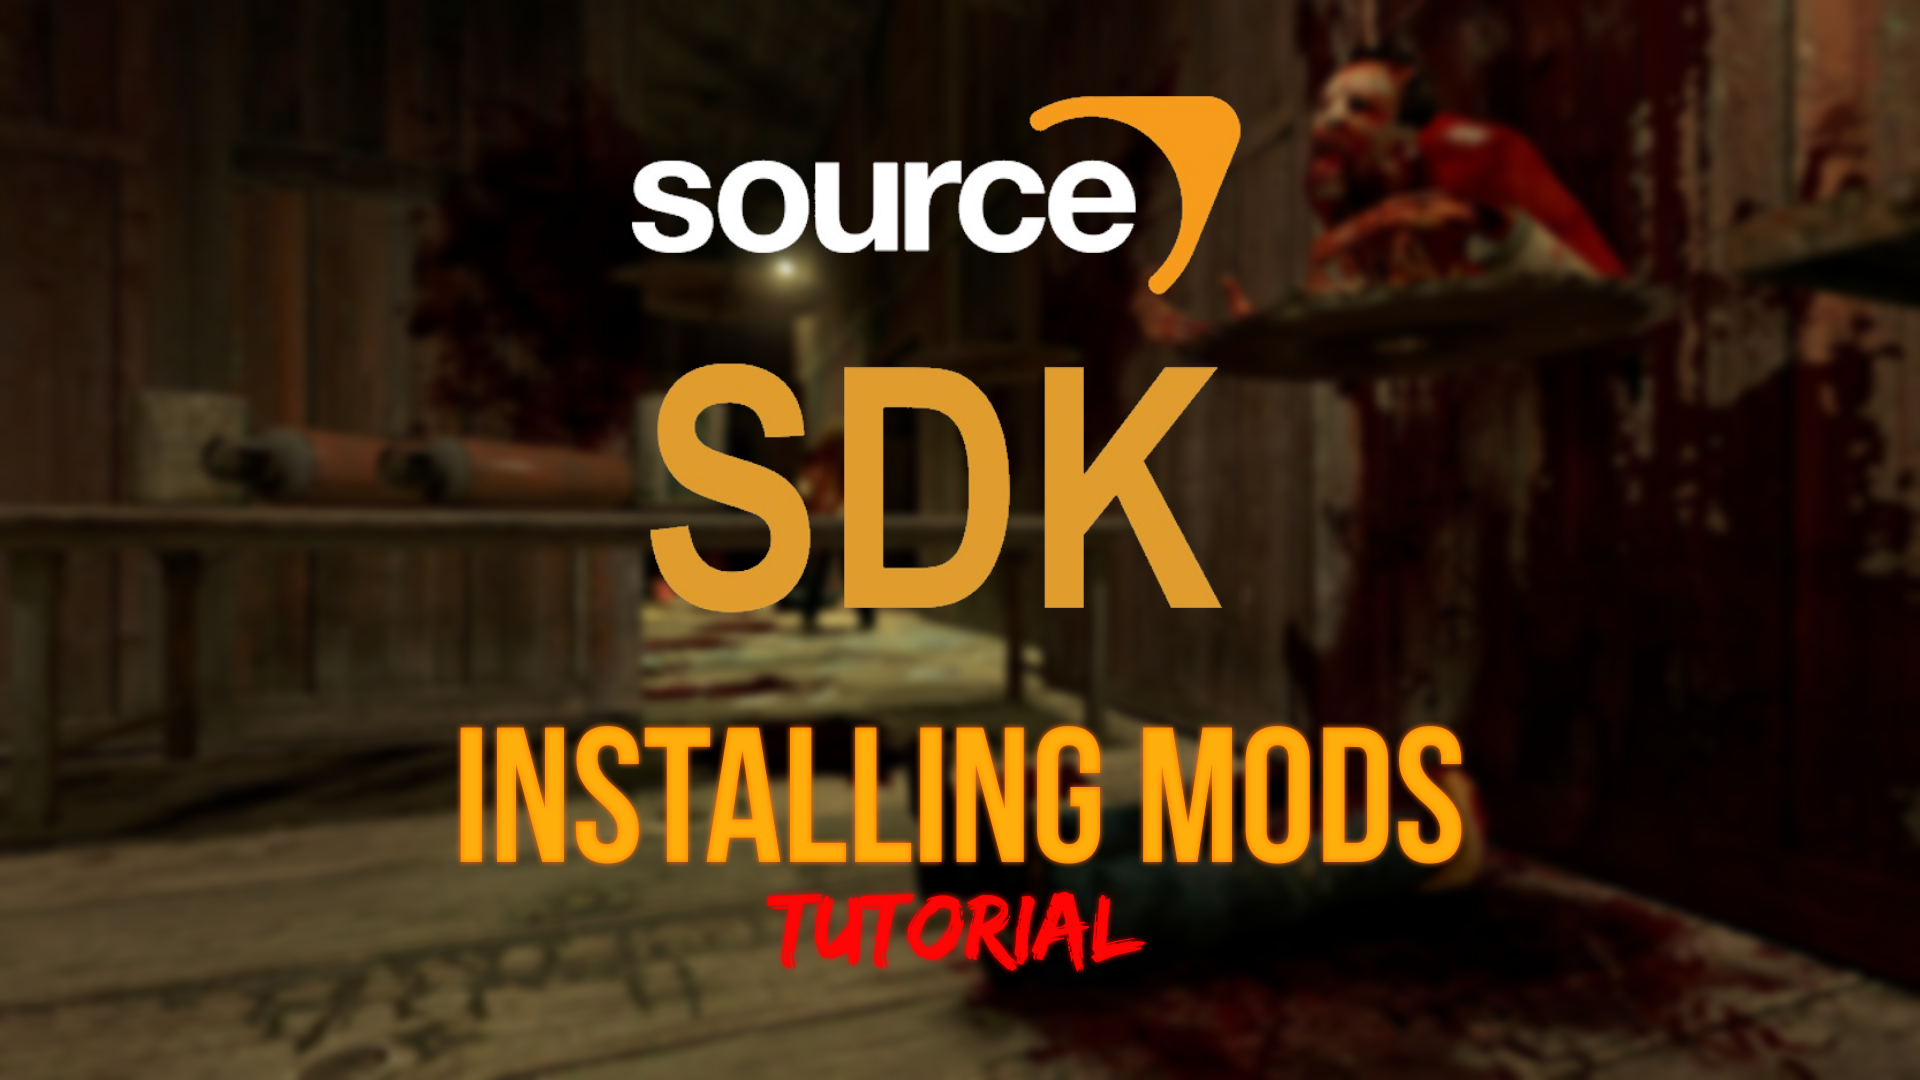 How to install Source Mods! tutorial - Deathmatch TλCTICAL mod for